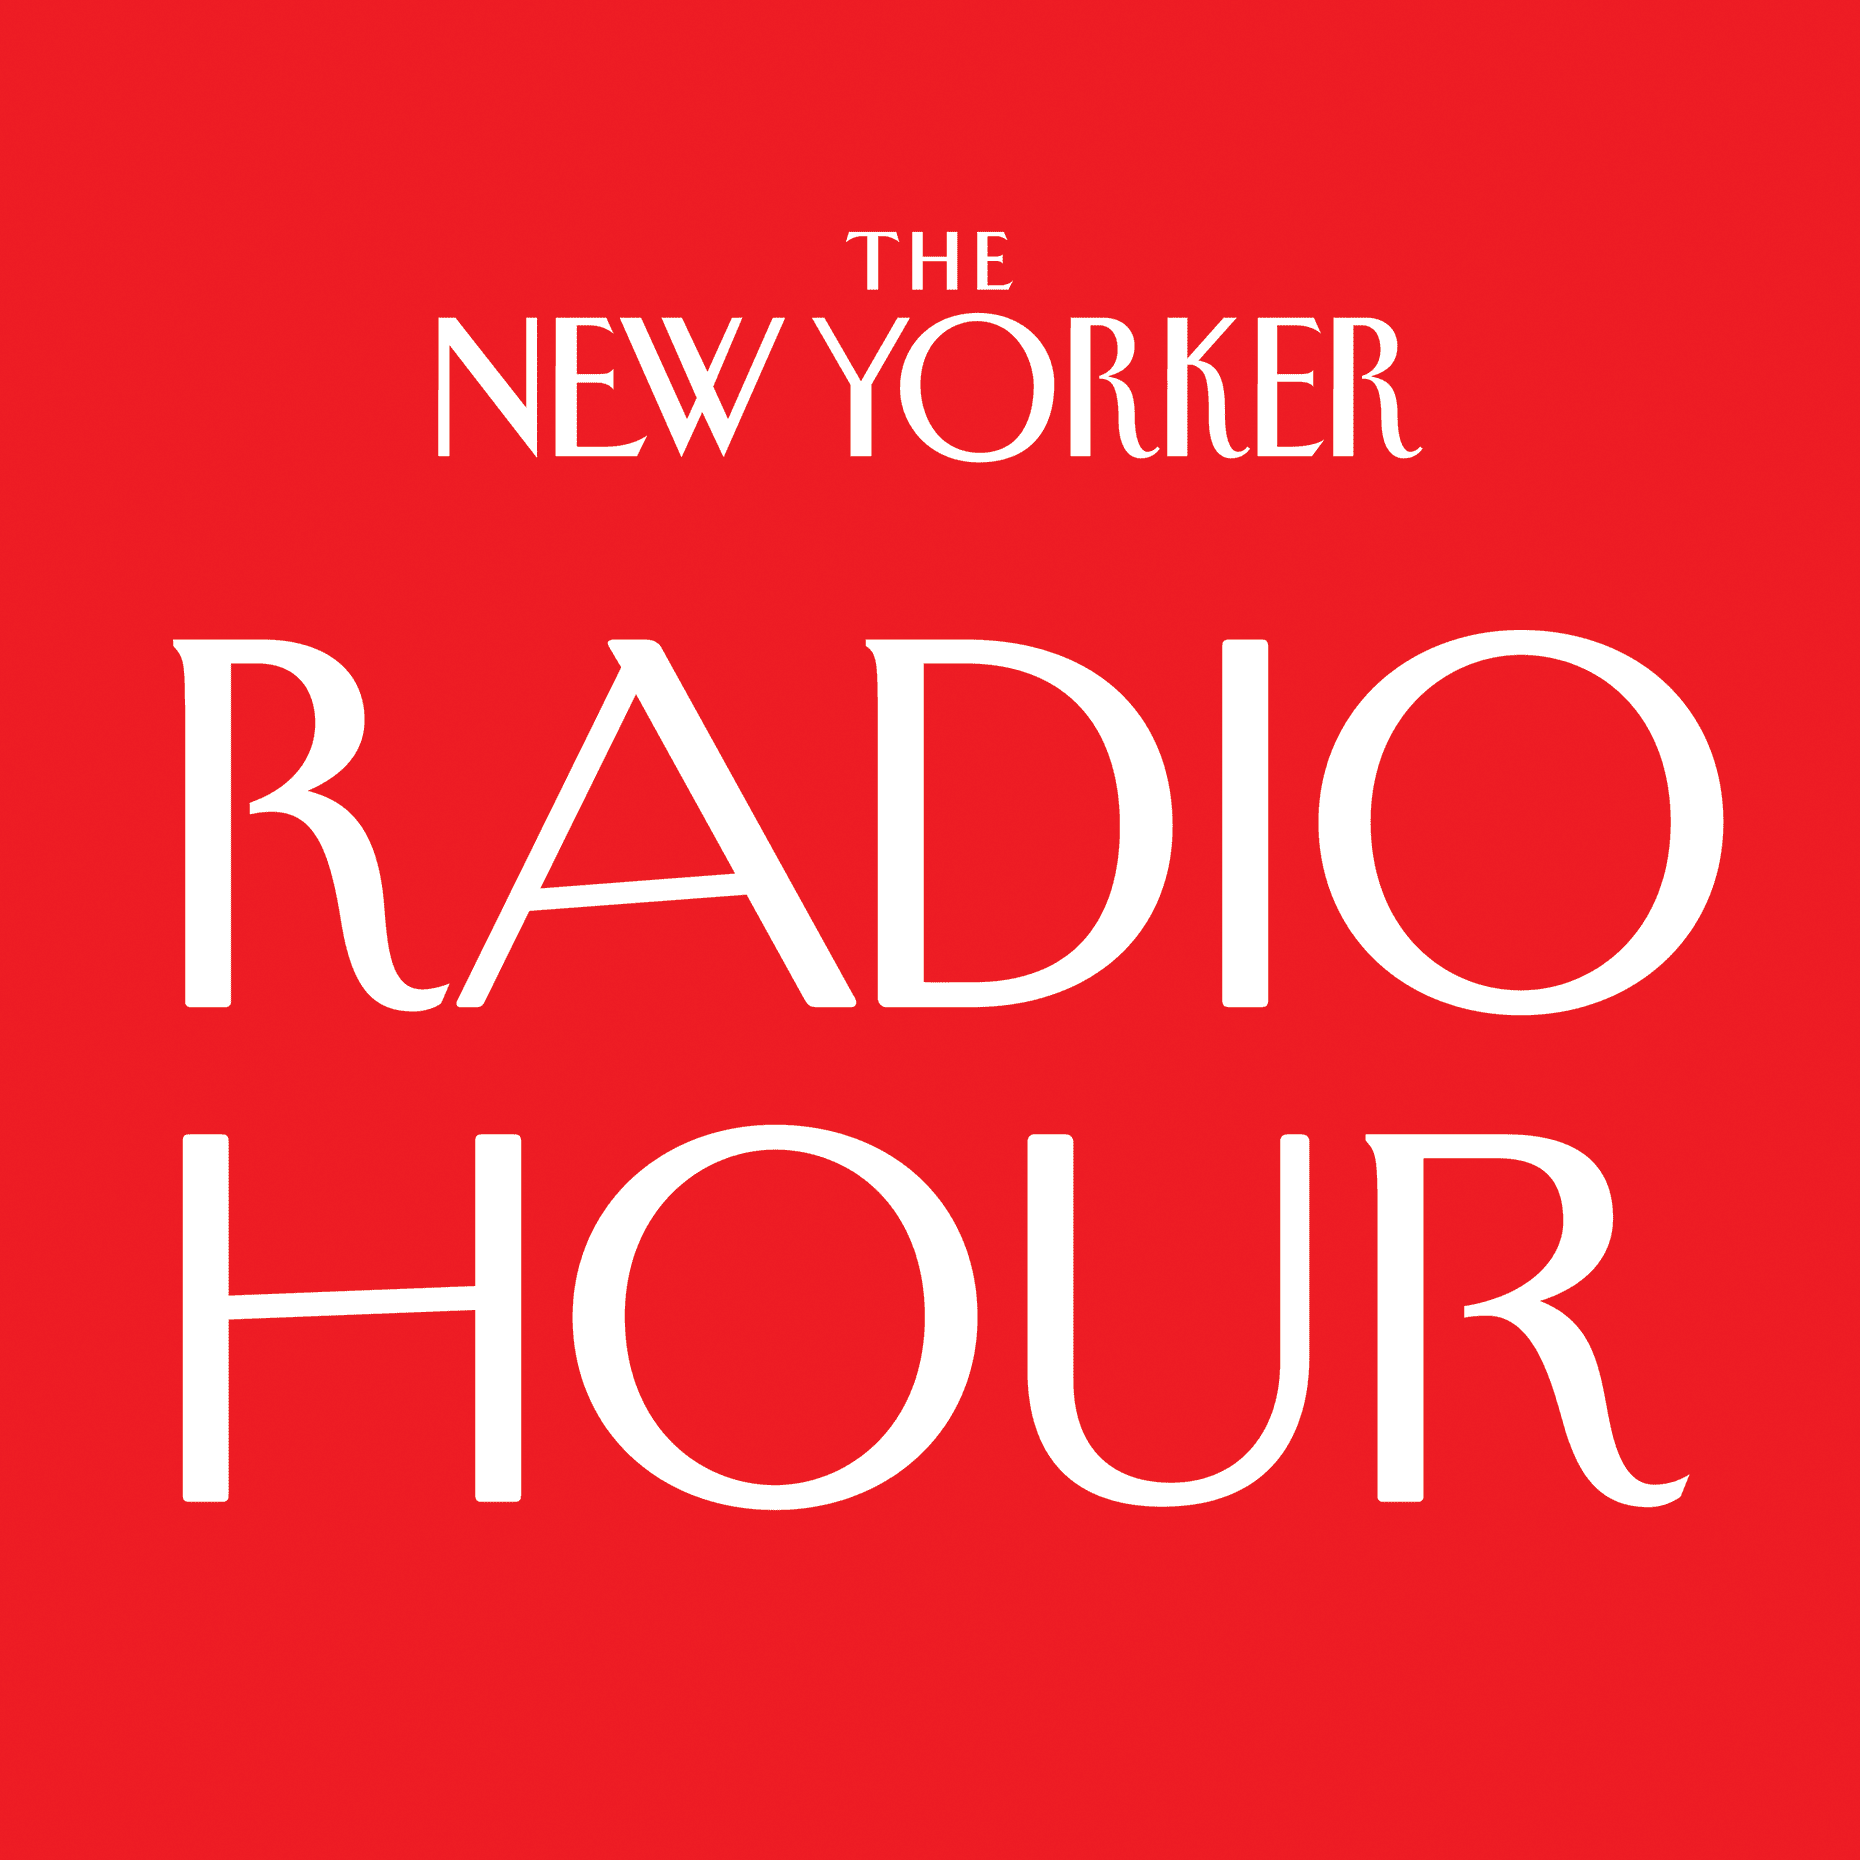 The New Yorker Radio Hour Episodes Wnyc Studios Podcasts